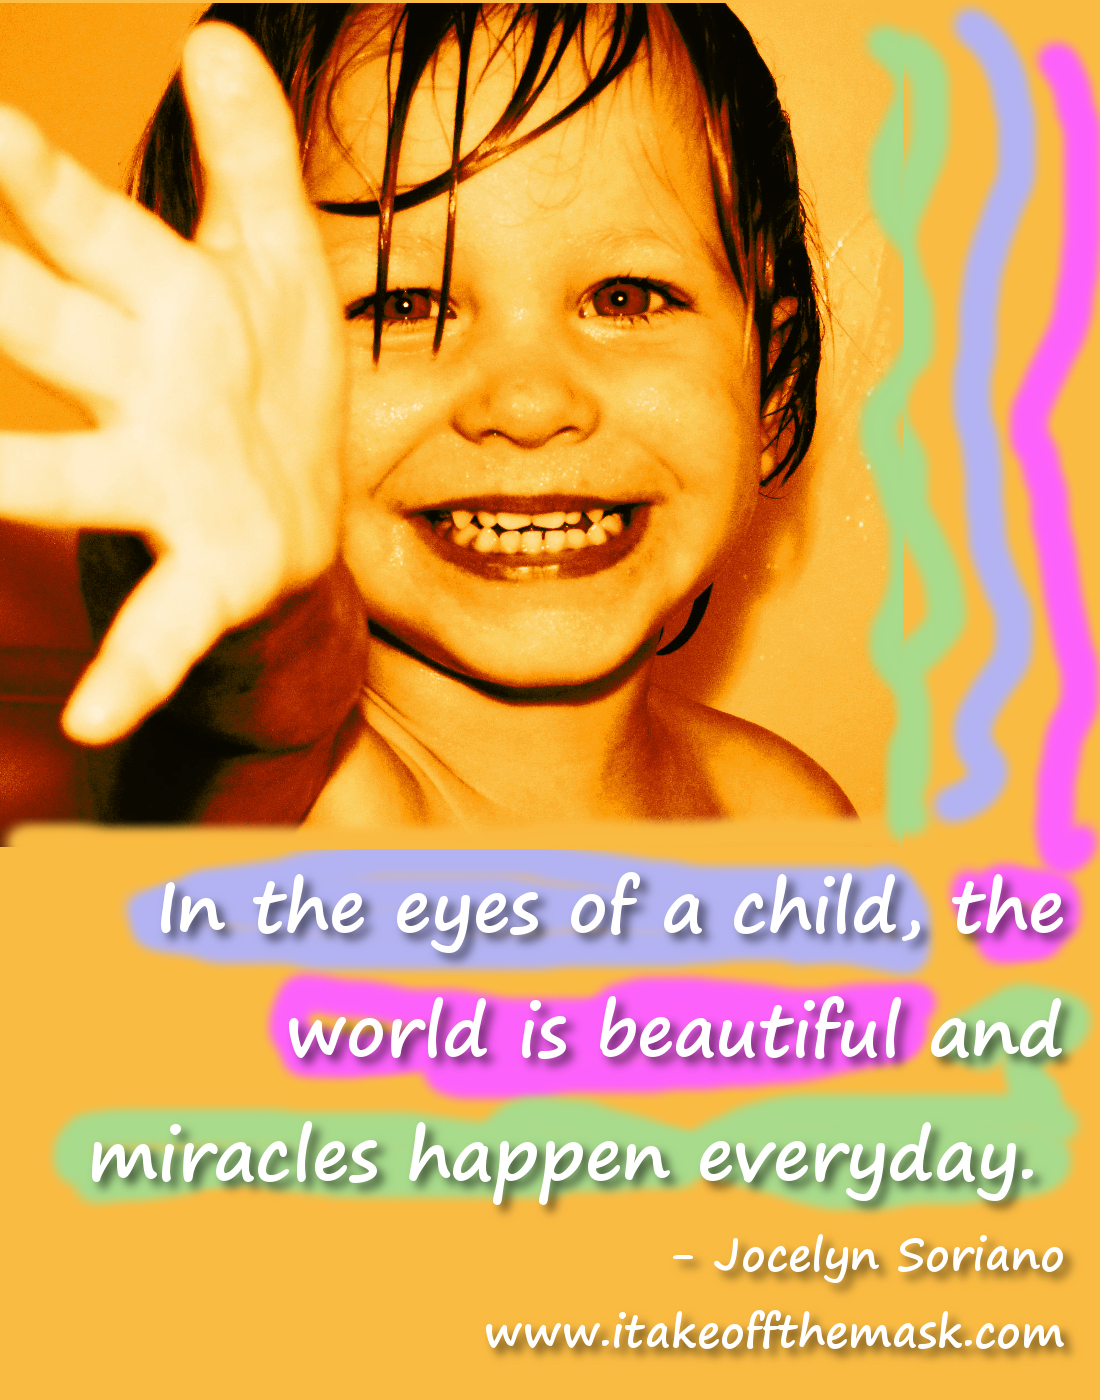 You'll See Miracles in The Eyes of a Child